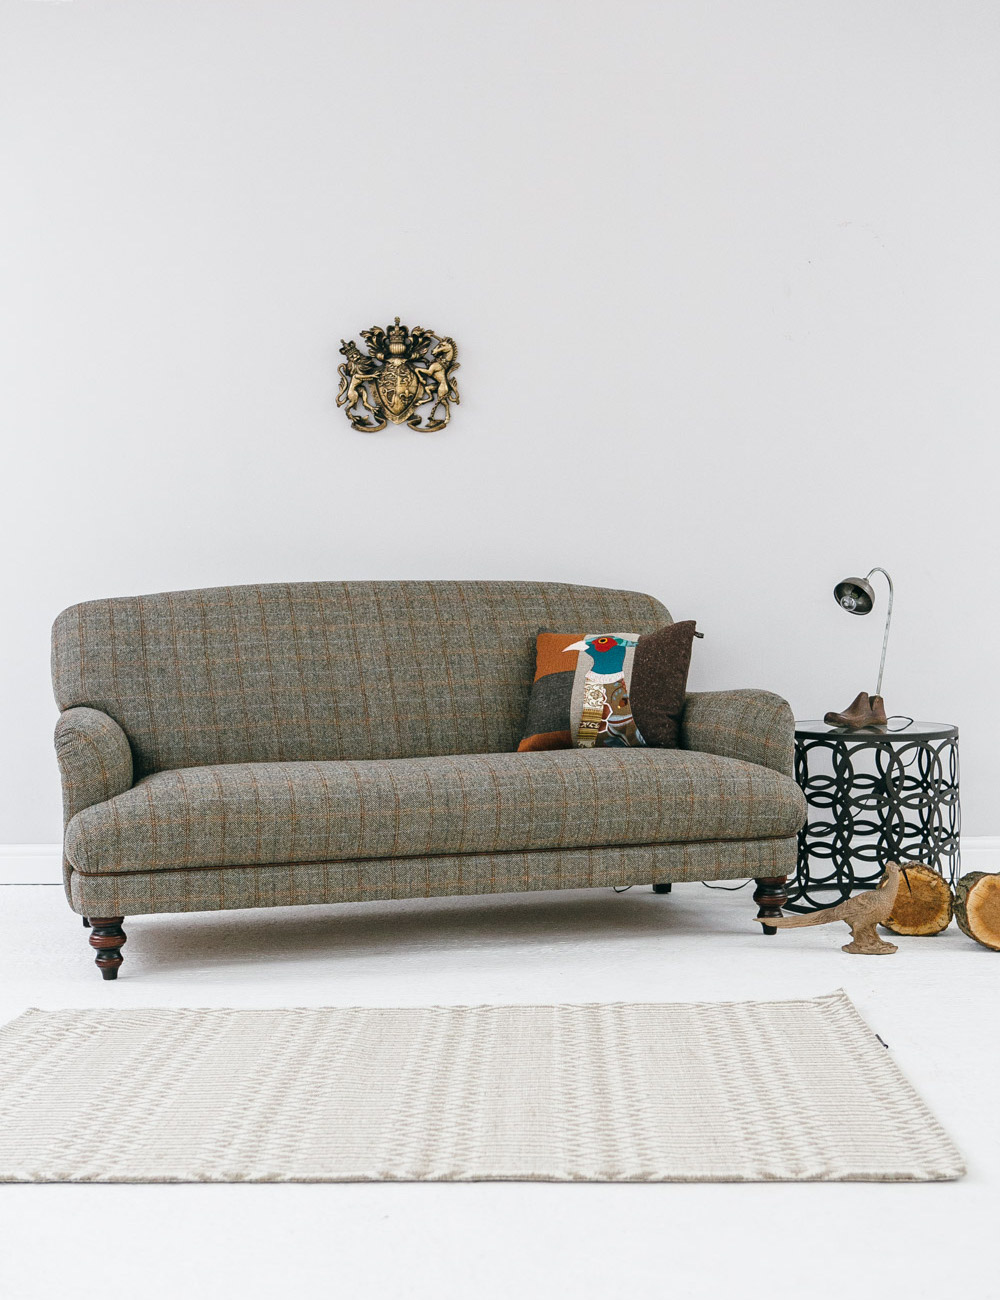 Manor harris tweed sofa in bracken at rose and grey for Grey tweed couch